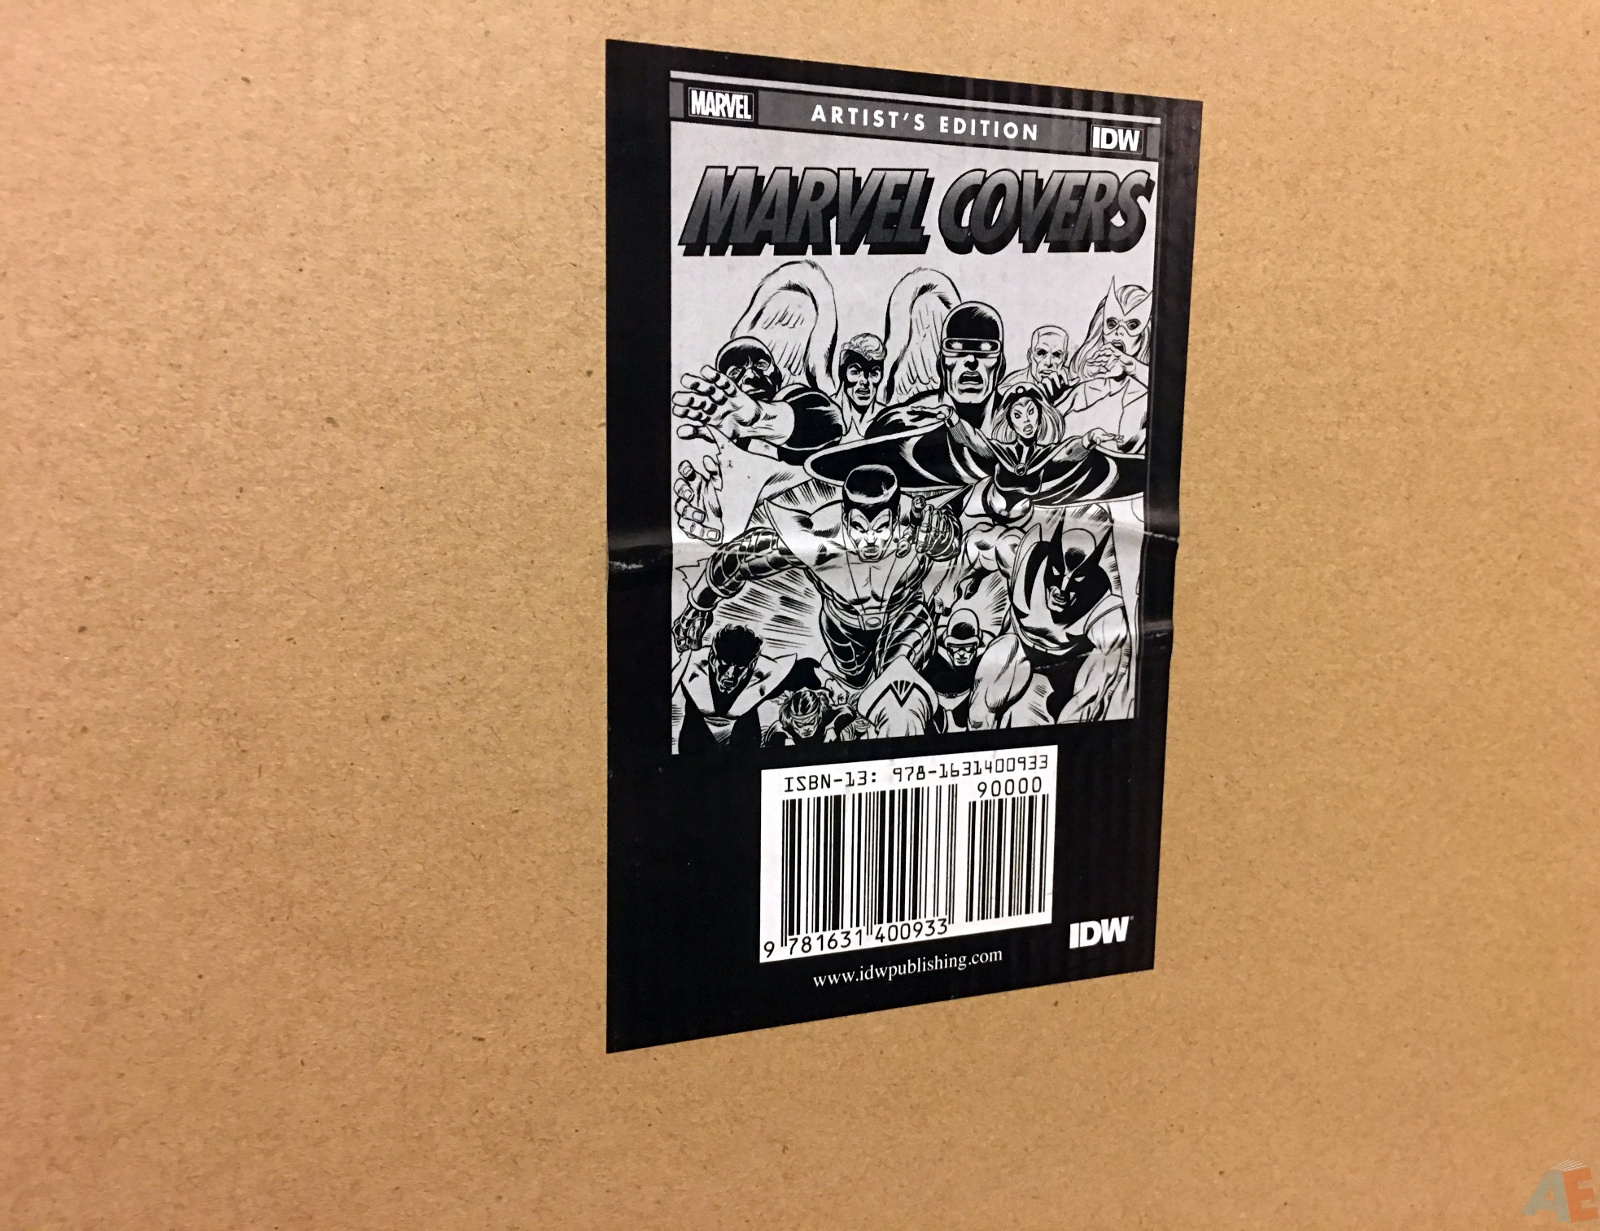 Marvel Covers Artist's Edition 50